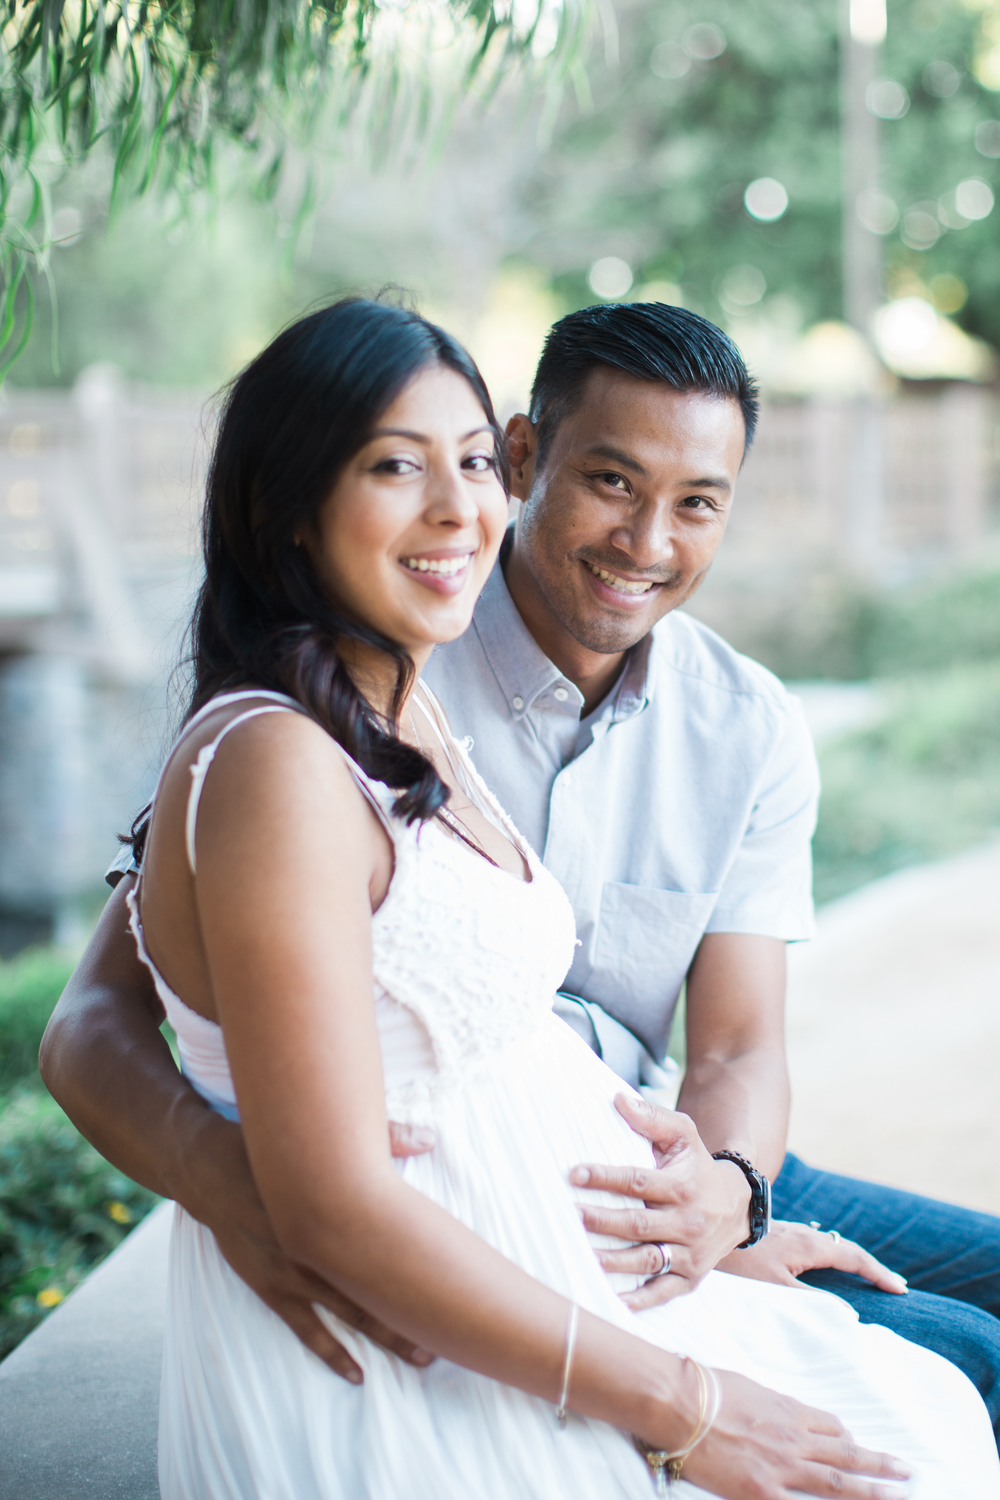 Marcella_Maternity_Cerritos_BrandonJFerlin_Photography-51.jpg